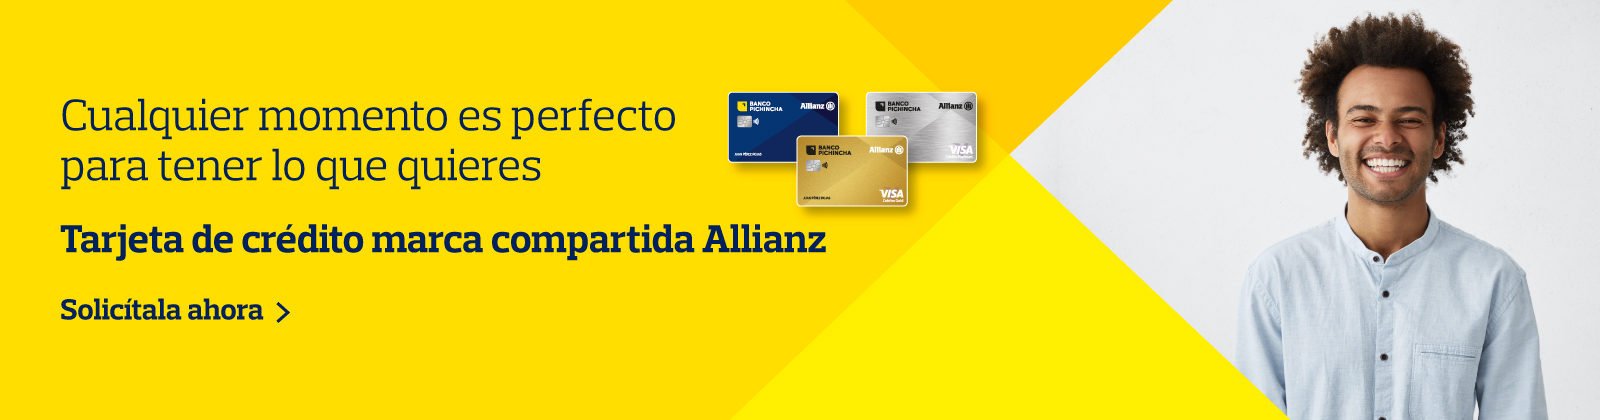 Marca compartida Allianz